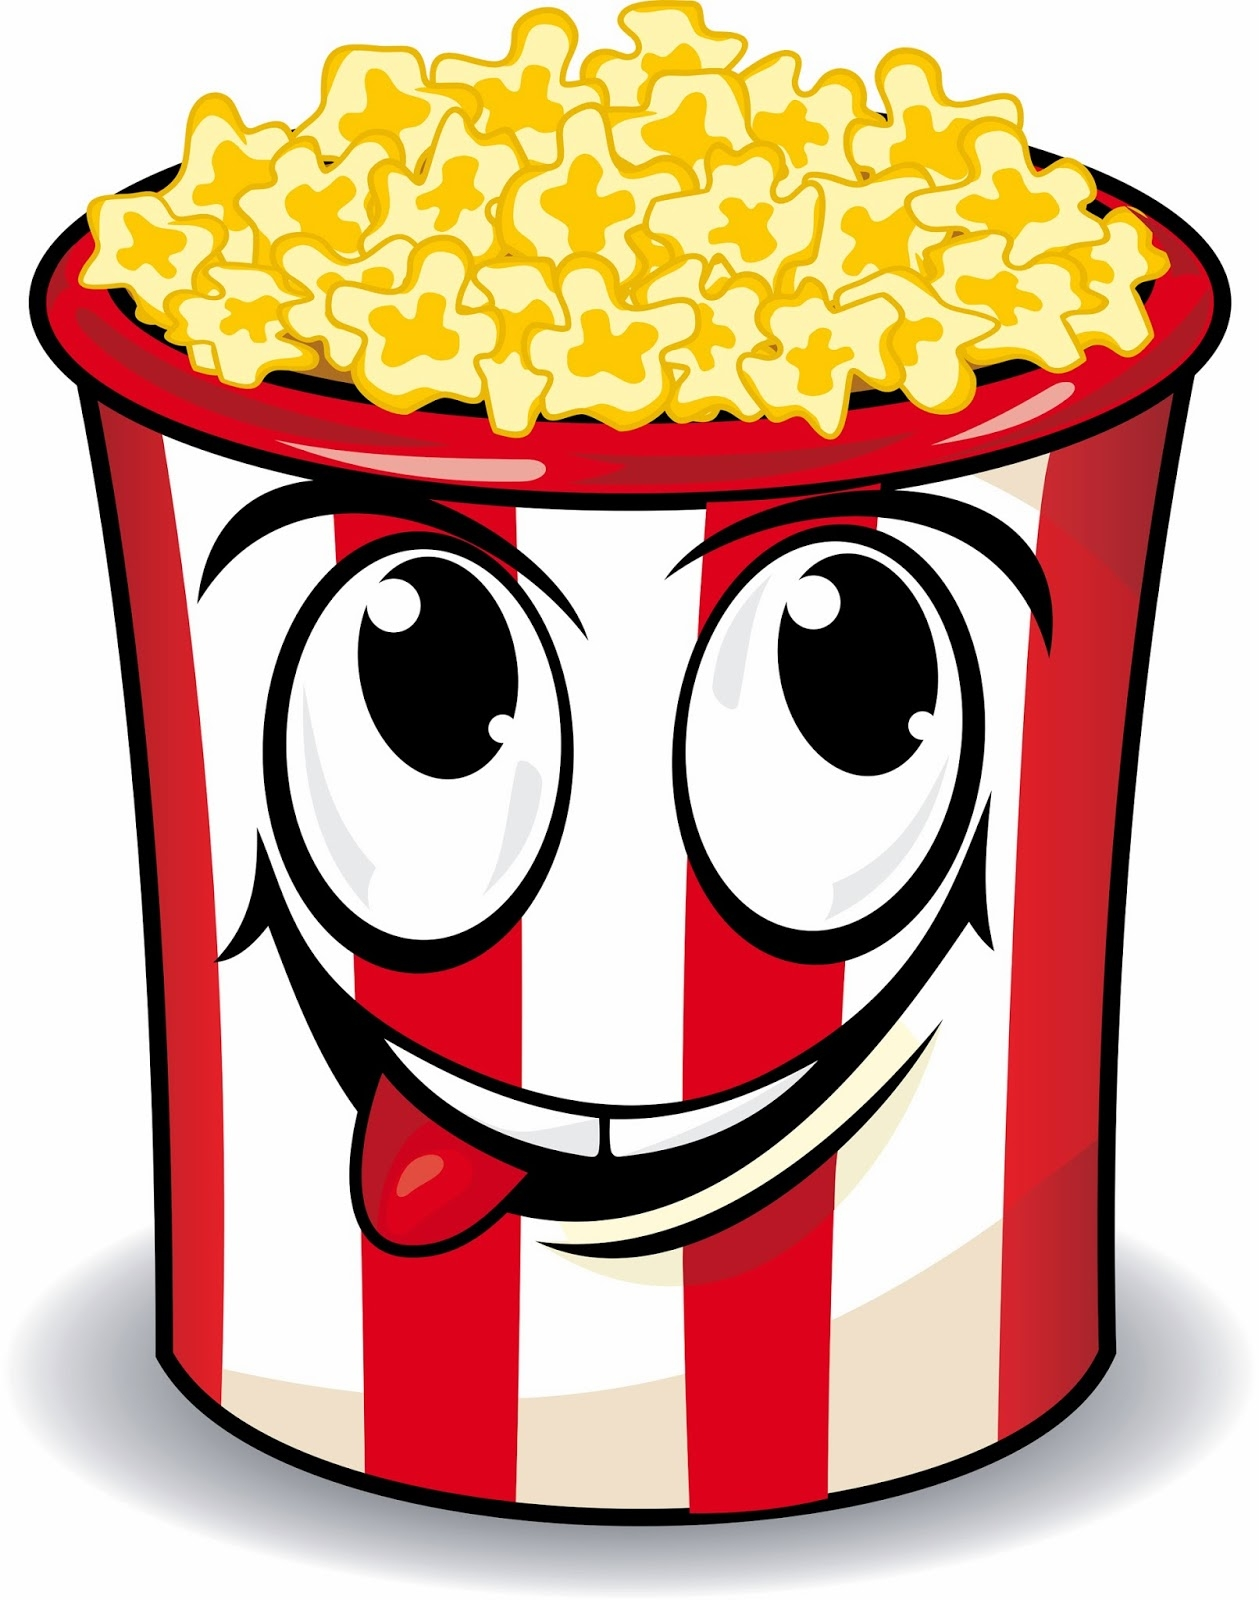 Popcorn clipart images